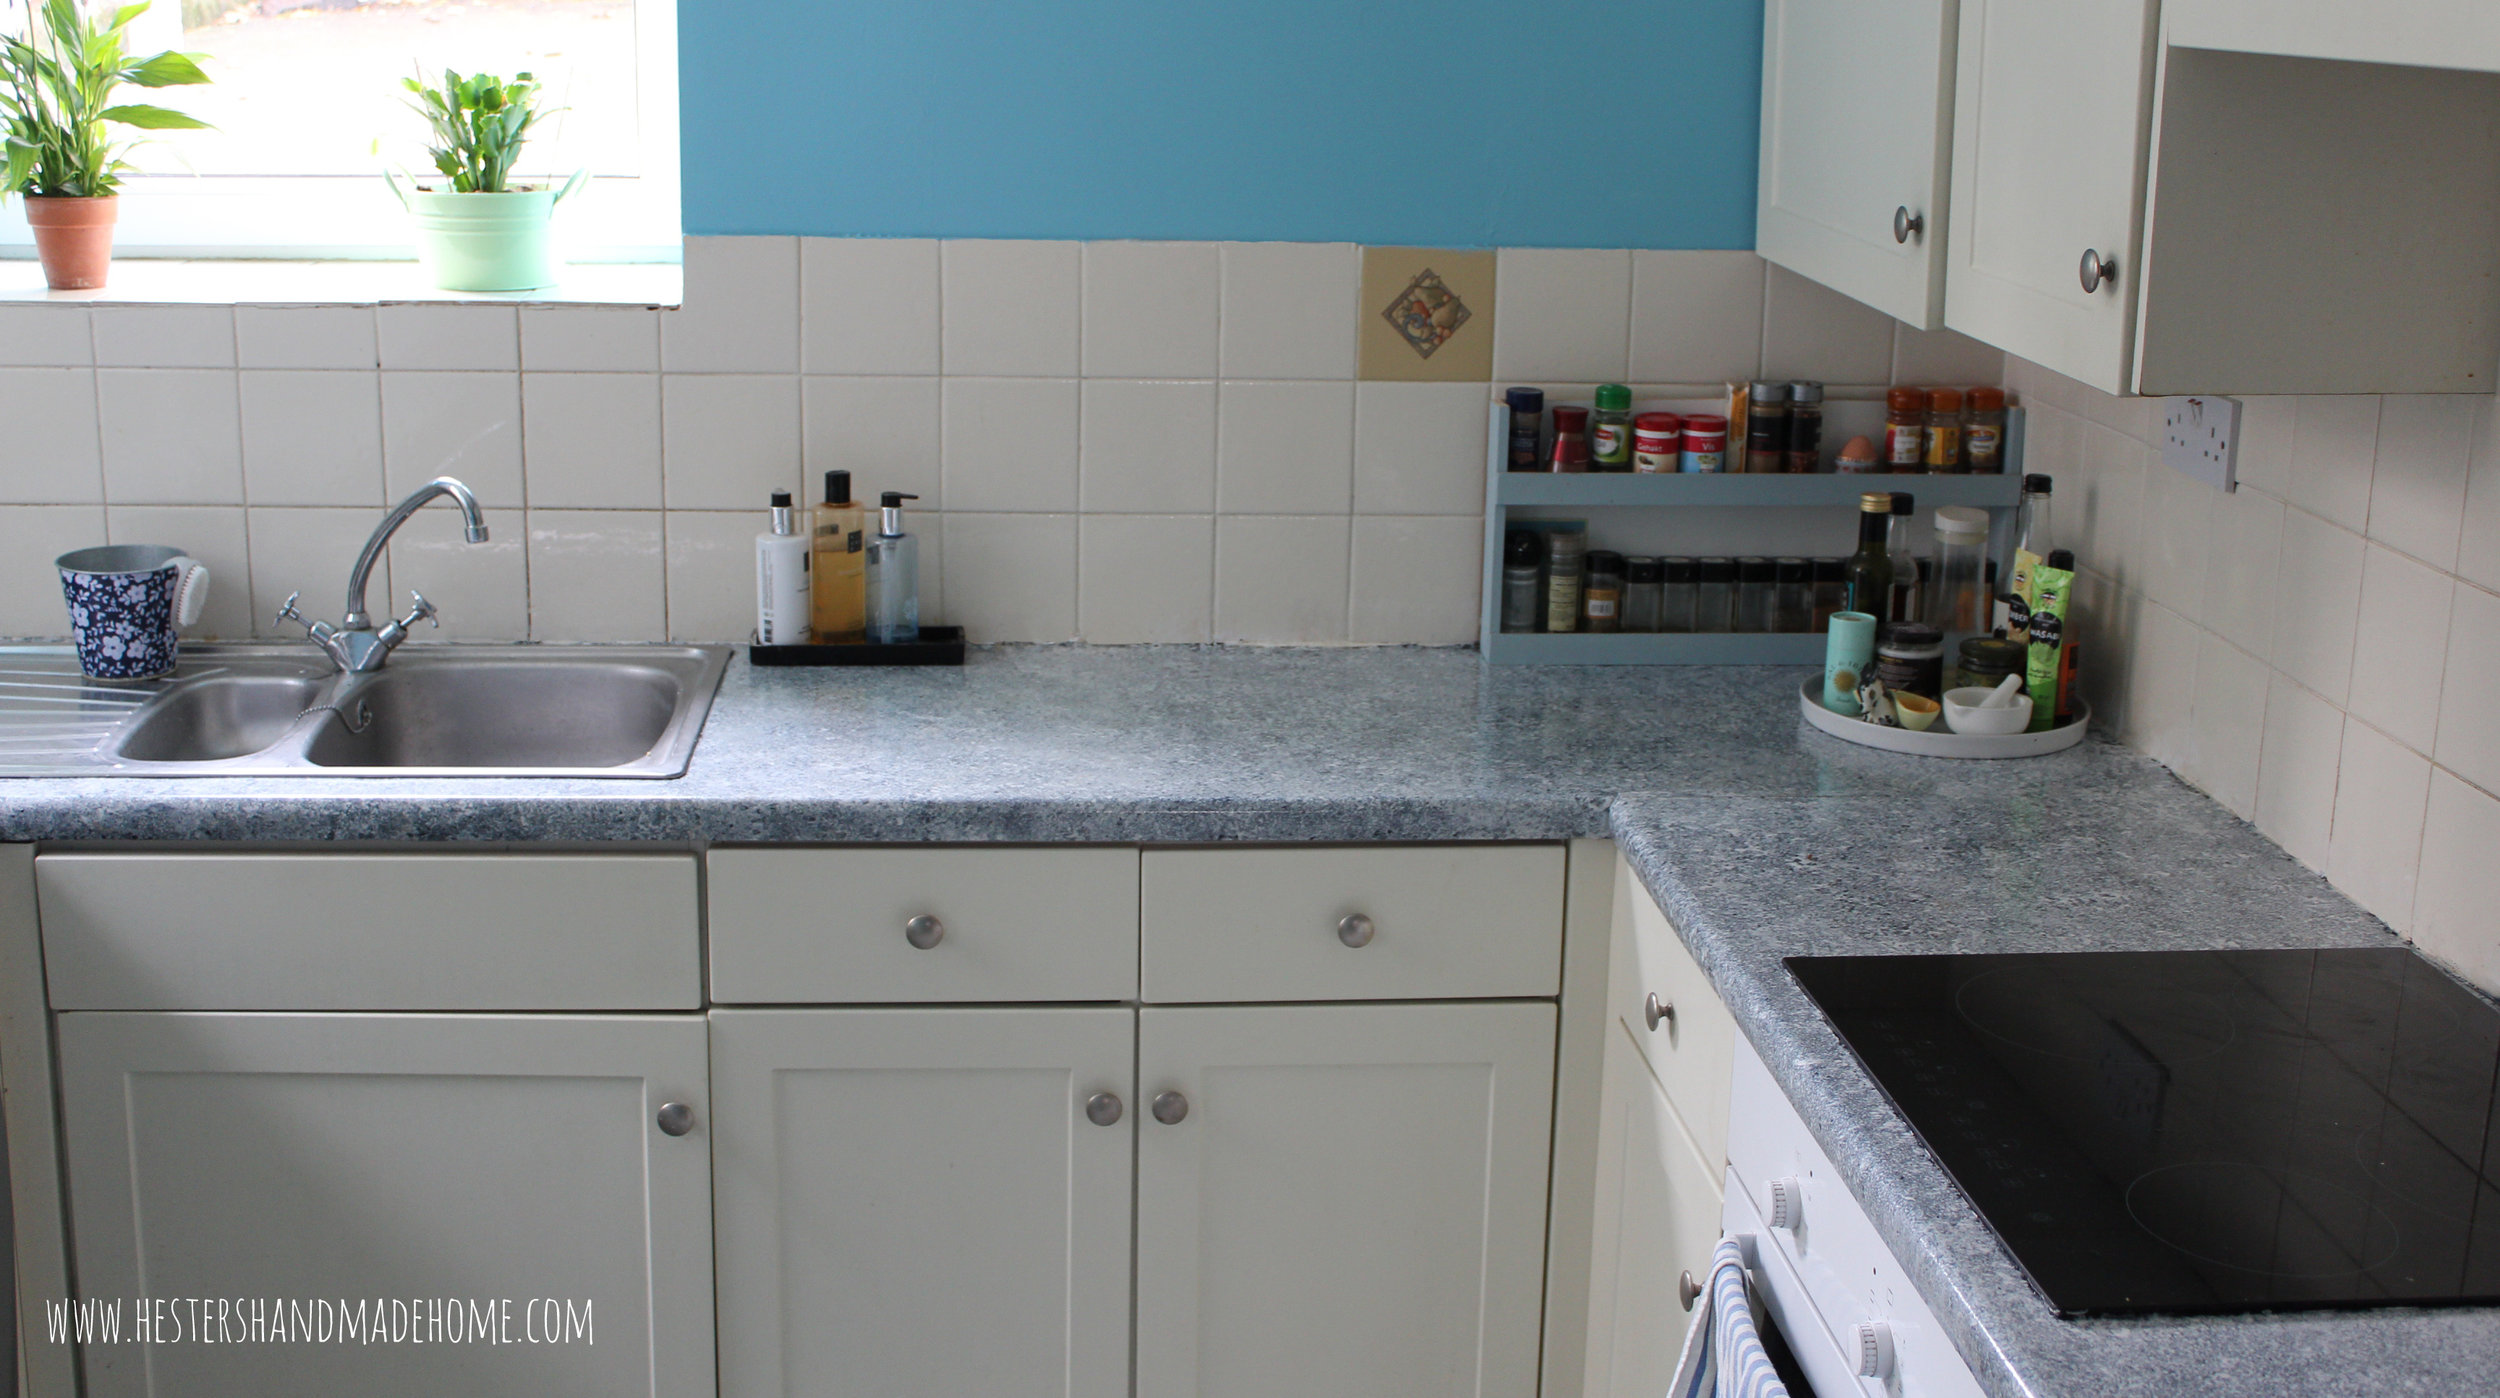 Painted Kitchen Counters With Giani Granite — Hester's Handmade Home